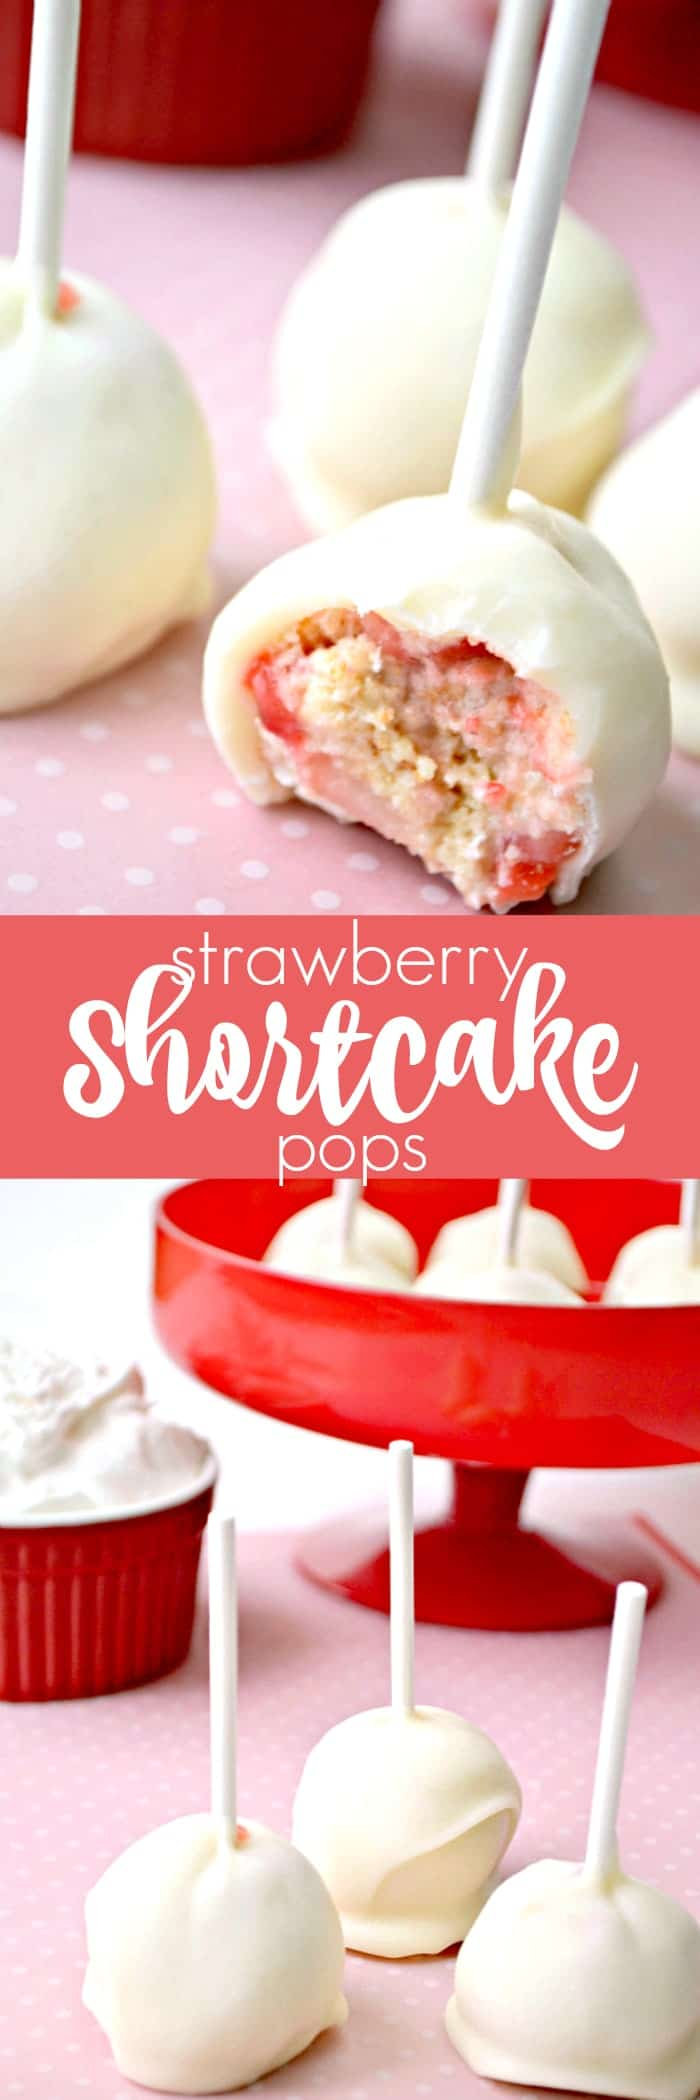 Strawberry Shortcake Pops! All the flavors of your favorite summer dessert in cake pop form!